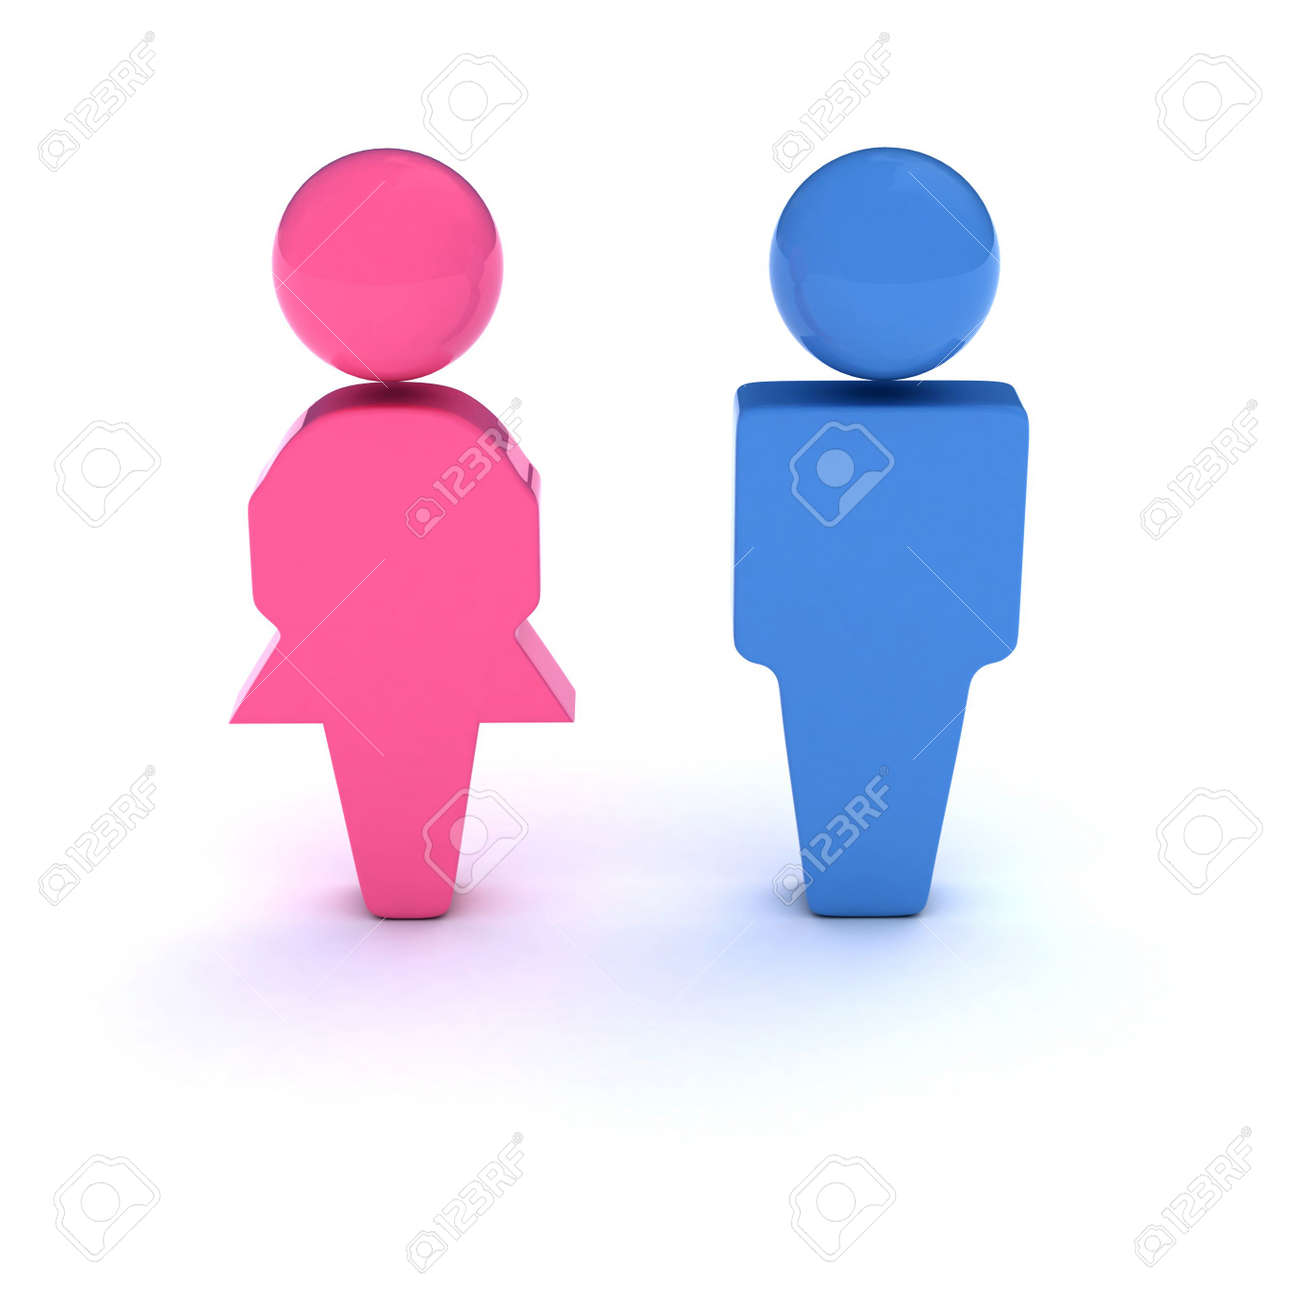 Bathroom Signs Holding Hands men and women symbol. a 3d symbol of a couple (bathroom signs